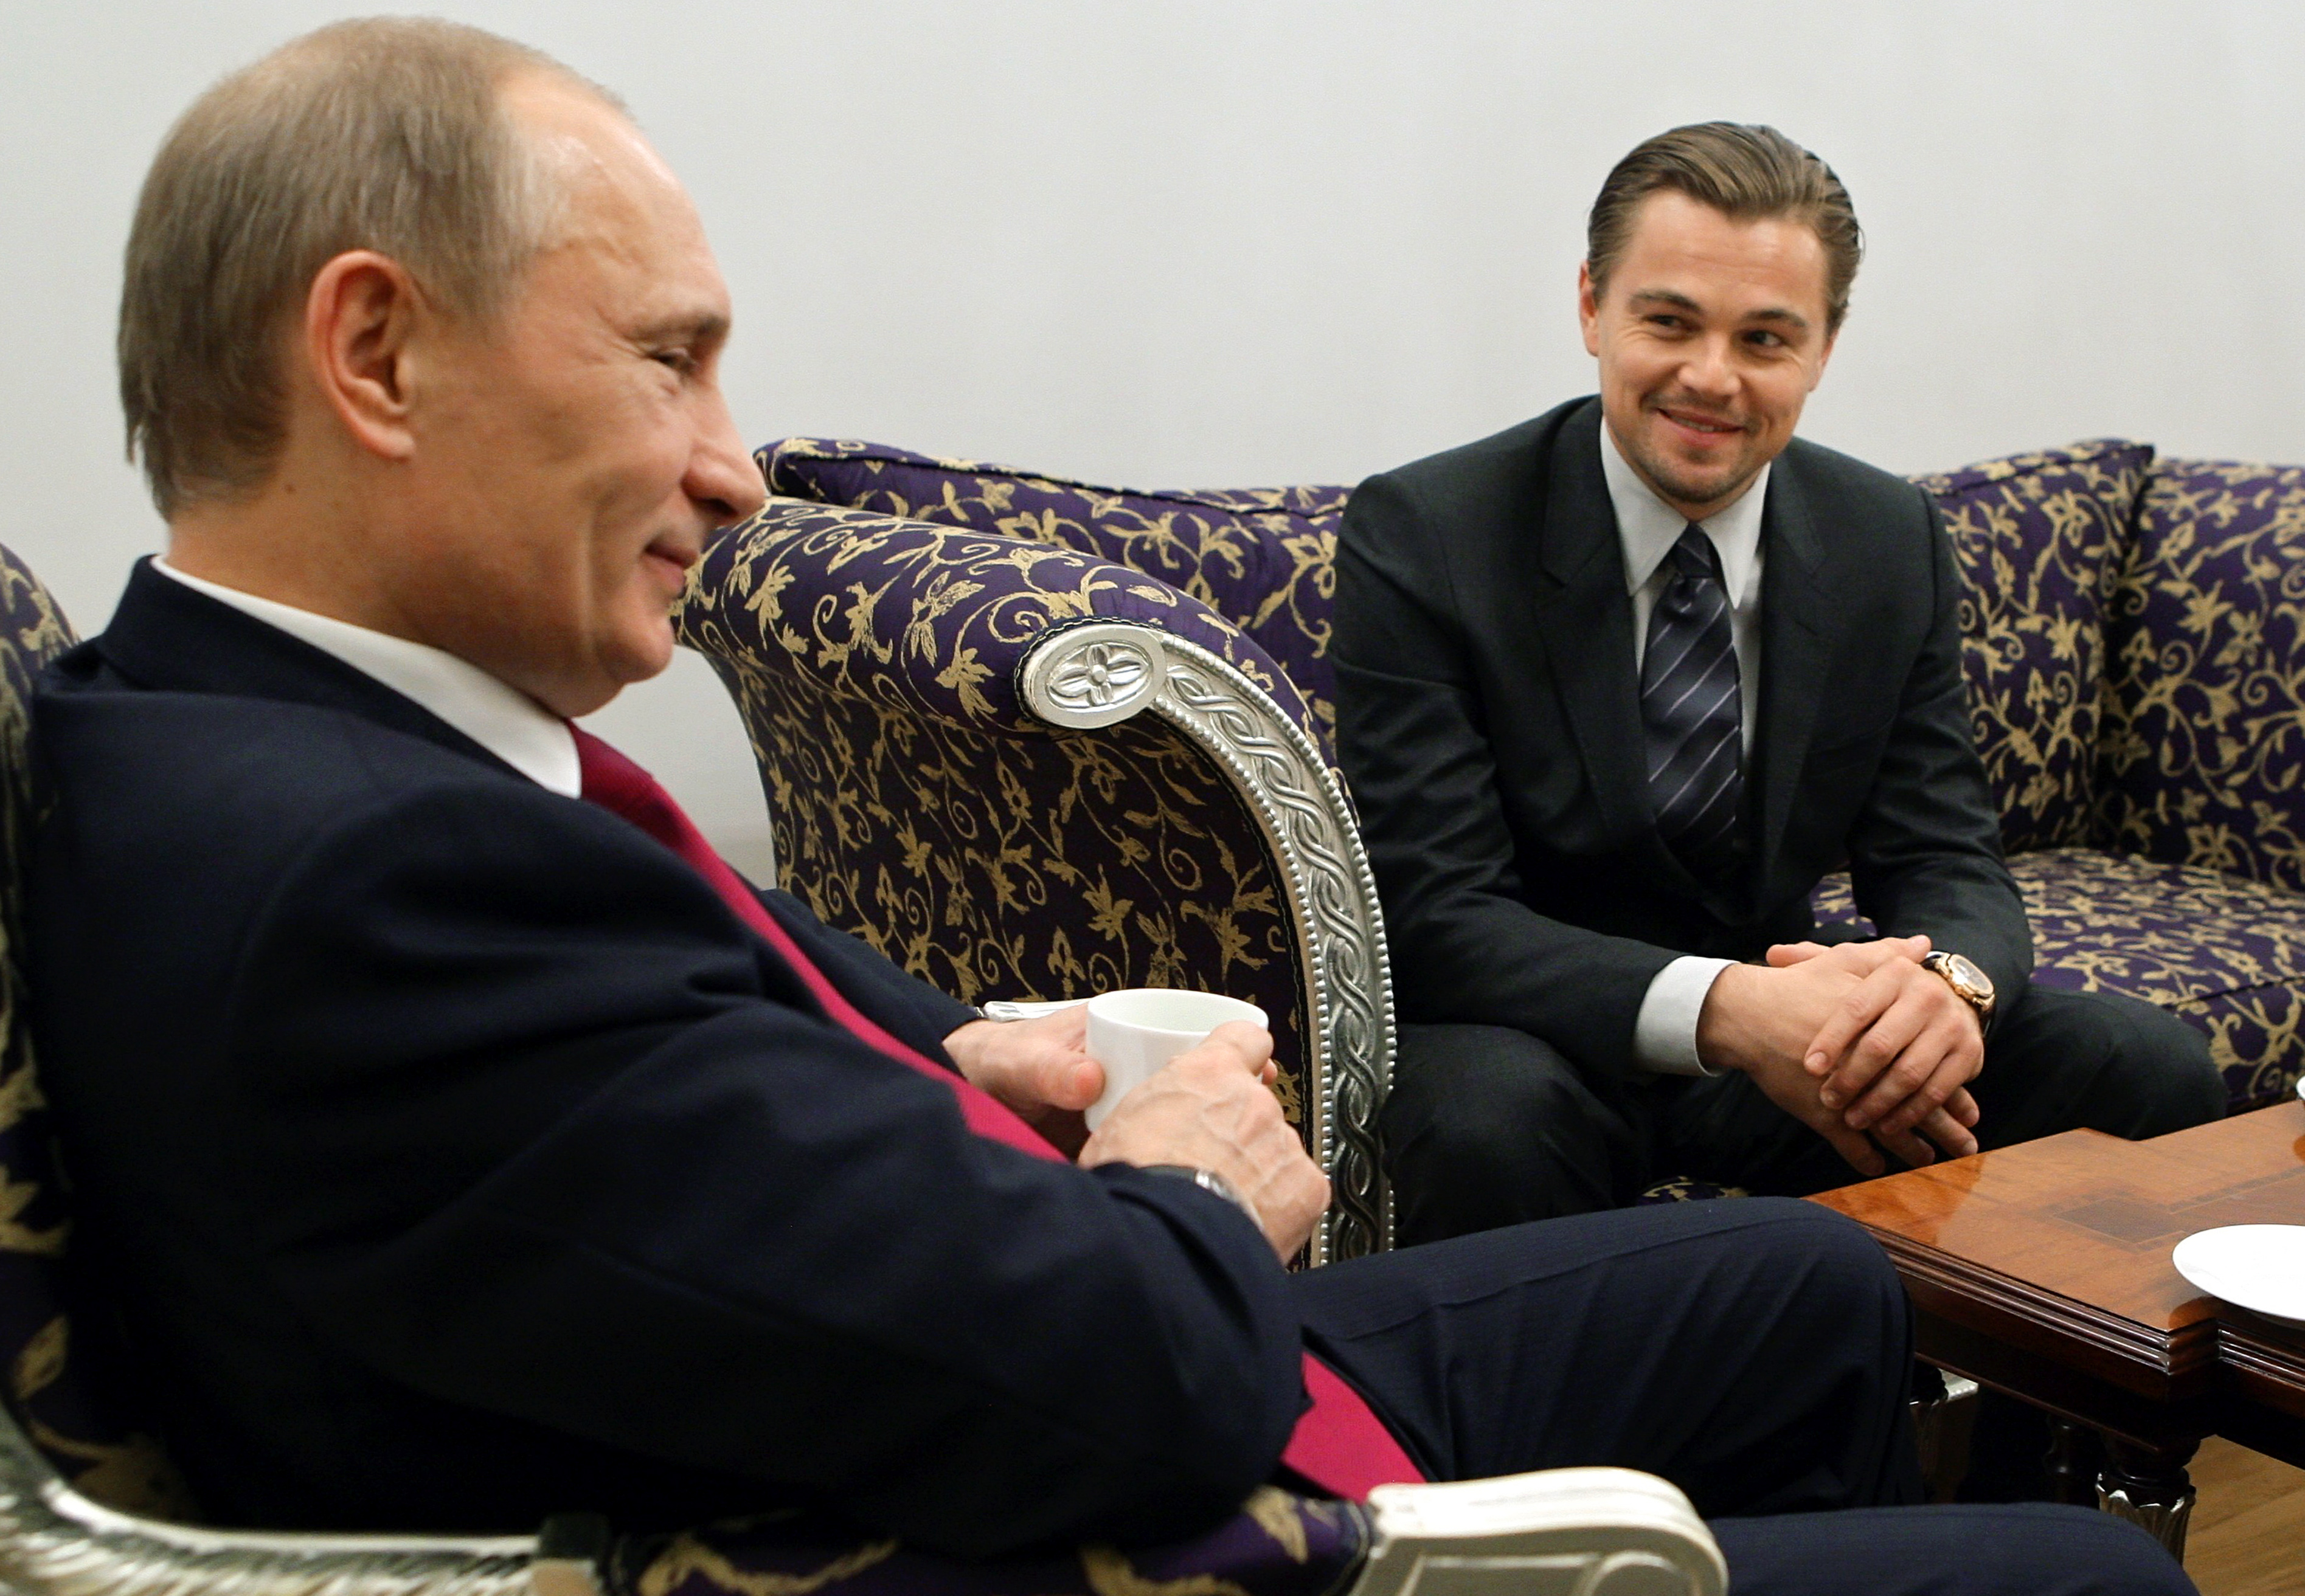 Russia's Prime Minister Vladimir Putin (L) speaks with Leonardo DiCaprio after a concert to mark the International Tiger Conservation Forum at the Mikhailovsky theater in Saint Petersburg on Nov. 23, 2010.